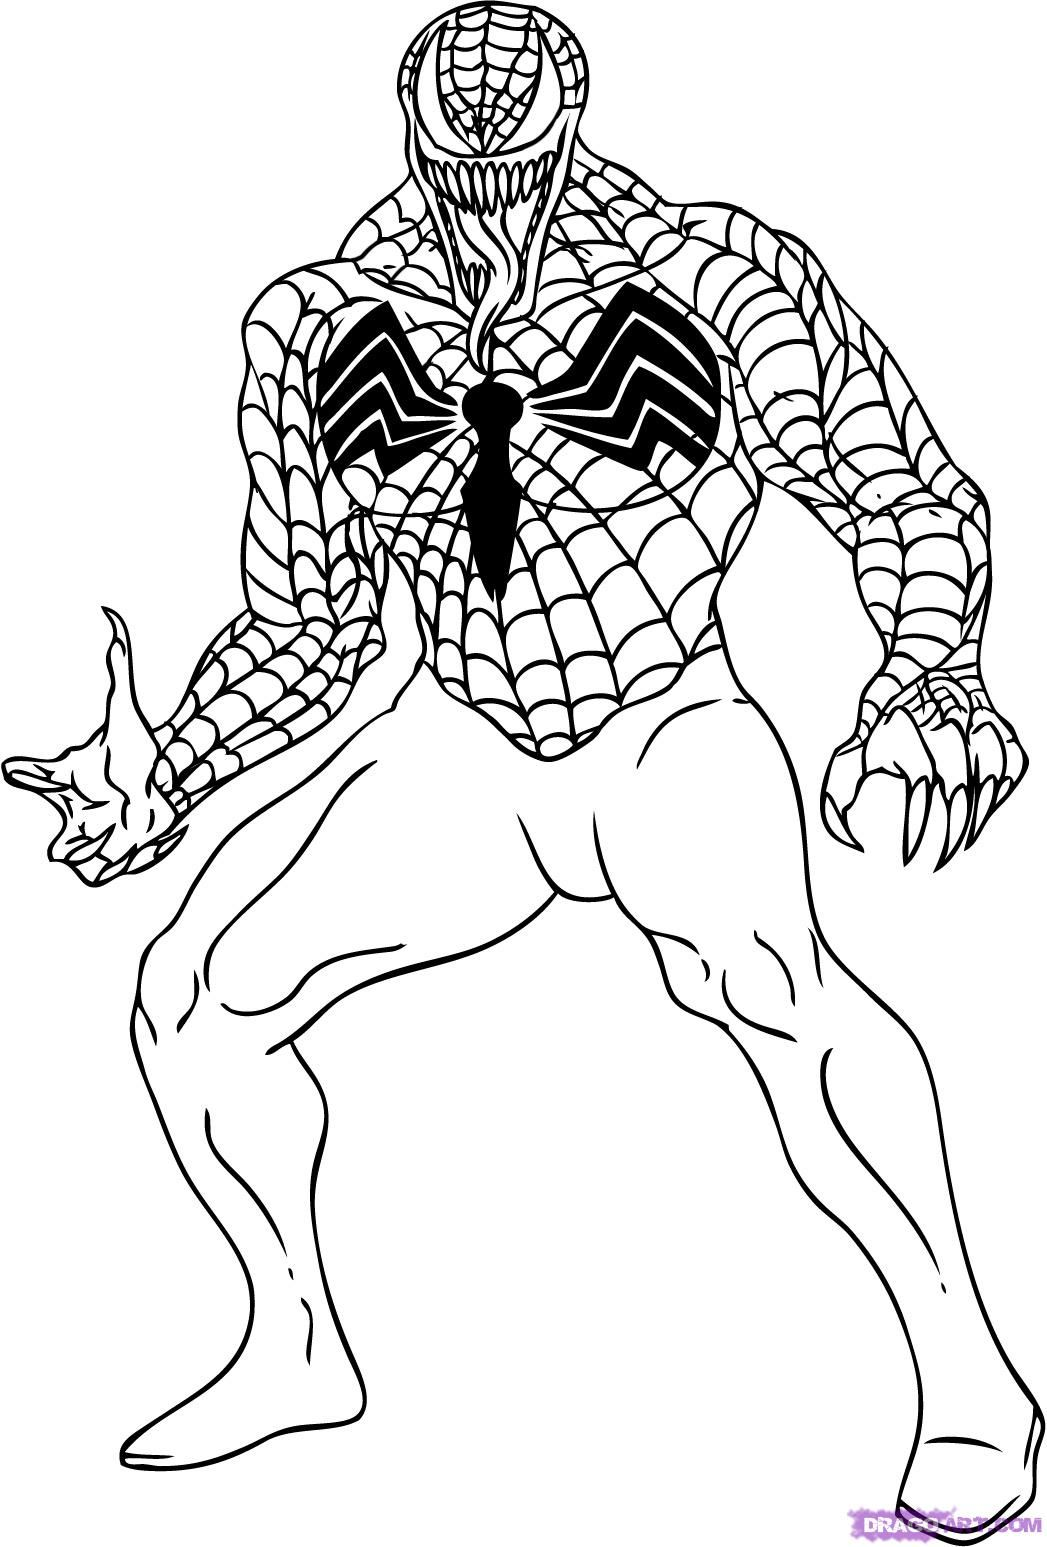 Venom Coloring Pages Spiderman Coloring Lego Coloring Lego Coloring Pages